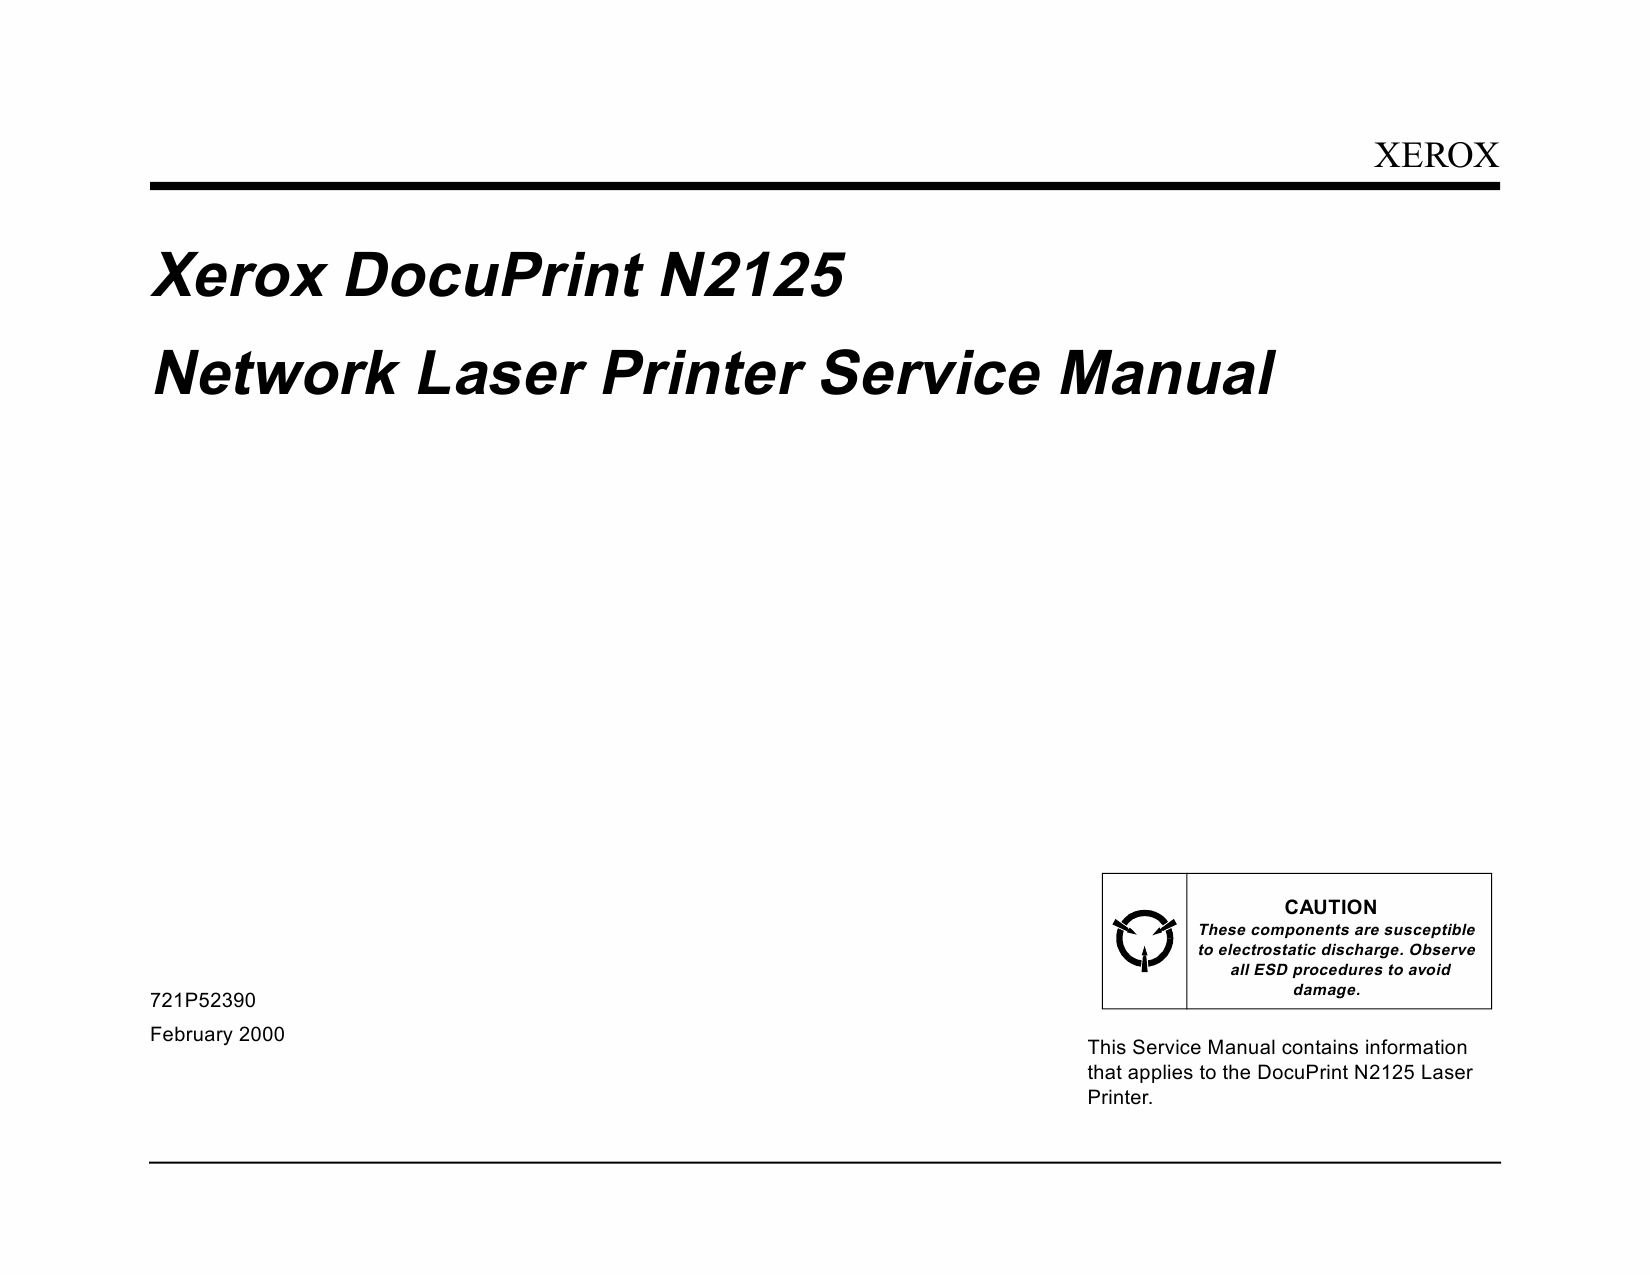 Xerox DocuPrint N2125 Service Manual